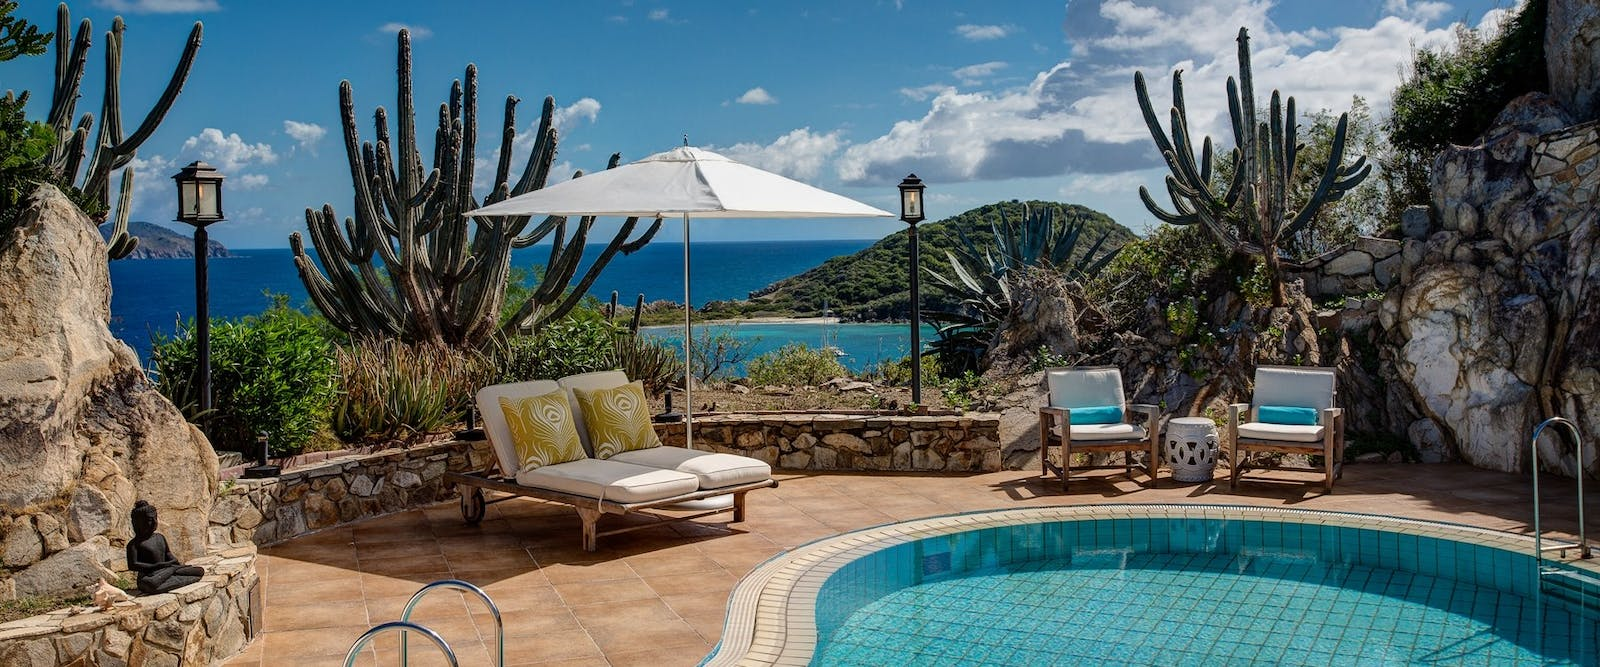 Pool area at Peter Island Resort & Spa, British Virgin Islands